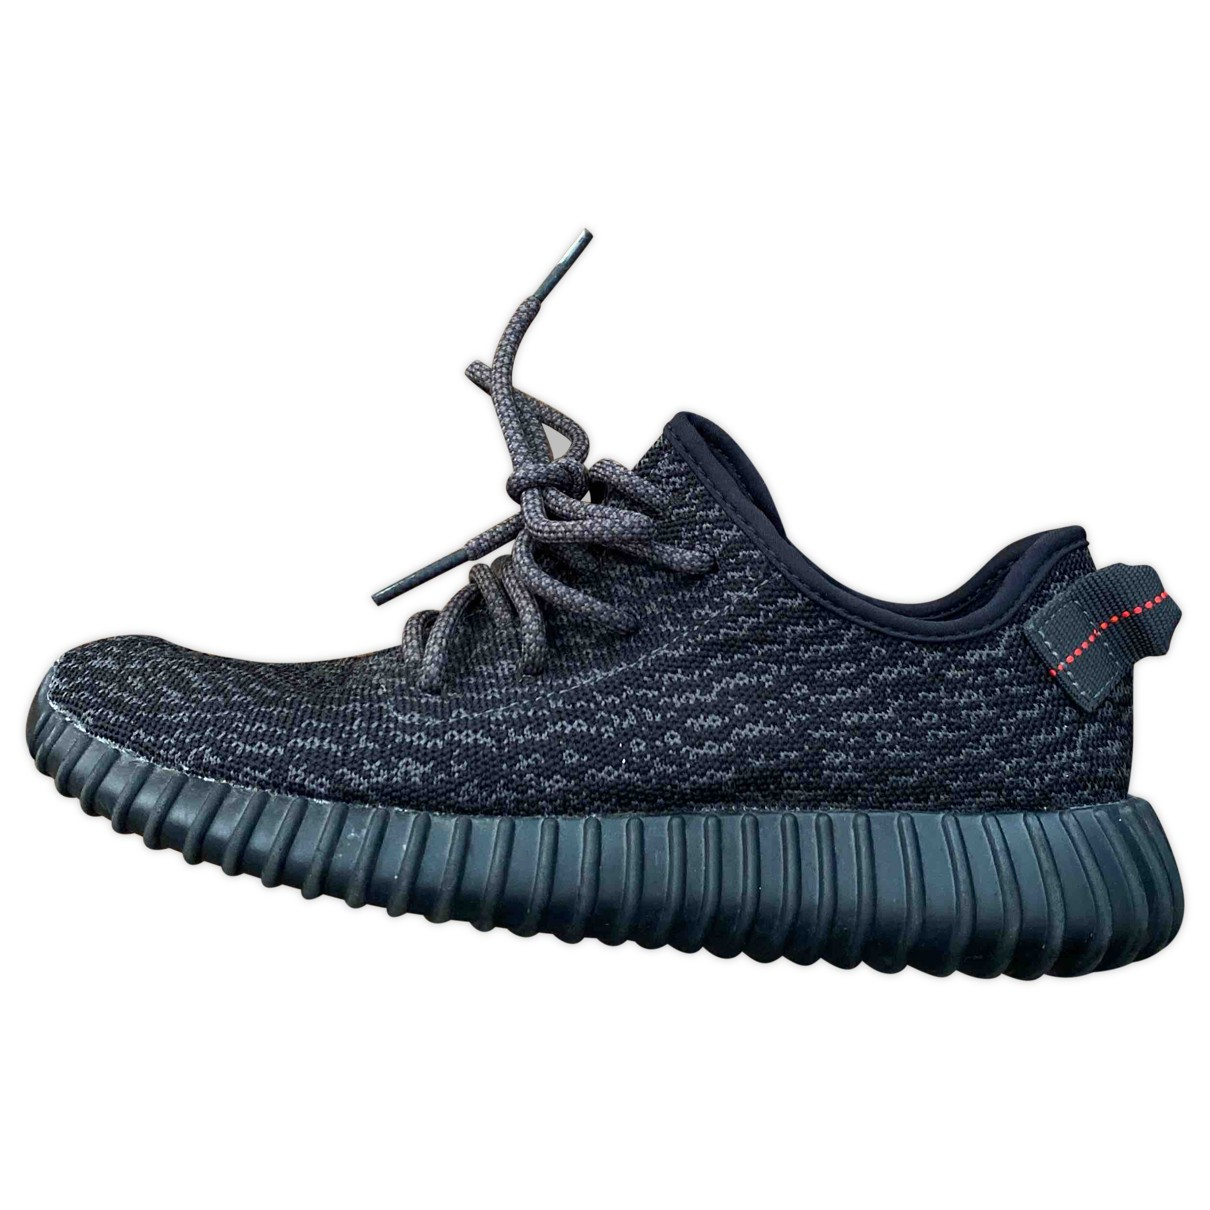 Yeezy X Adidas Boost 350 V1 Sneakers in  Schwarz Polyester